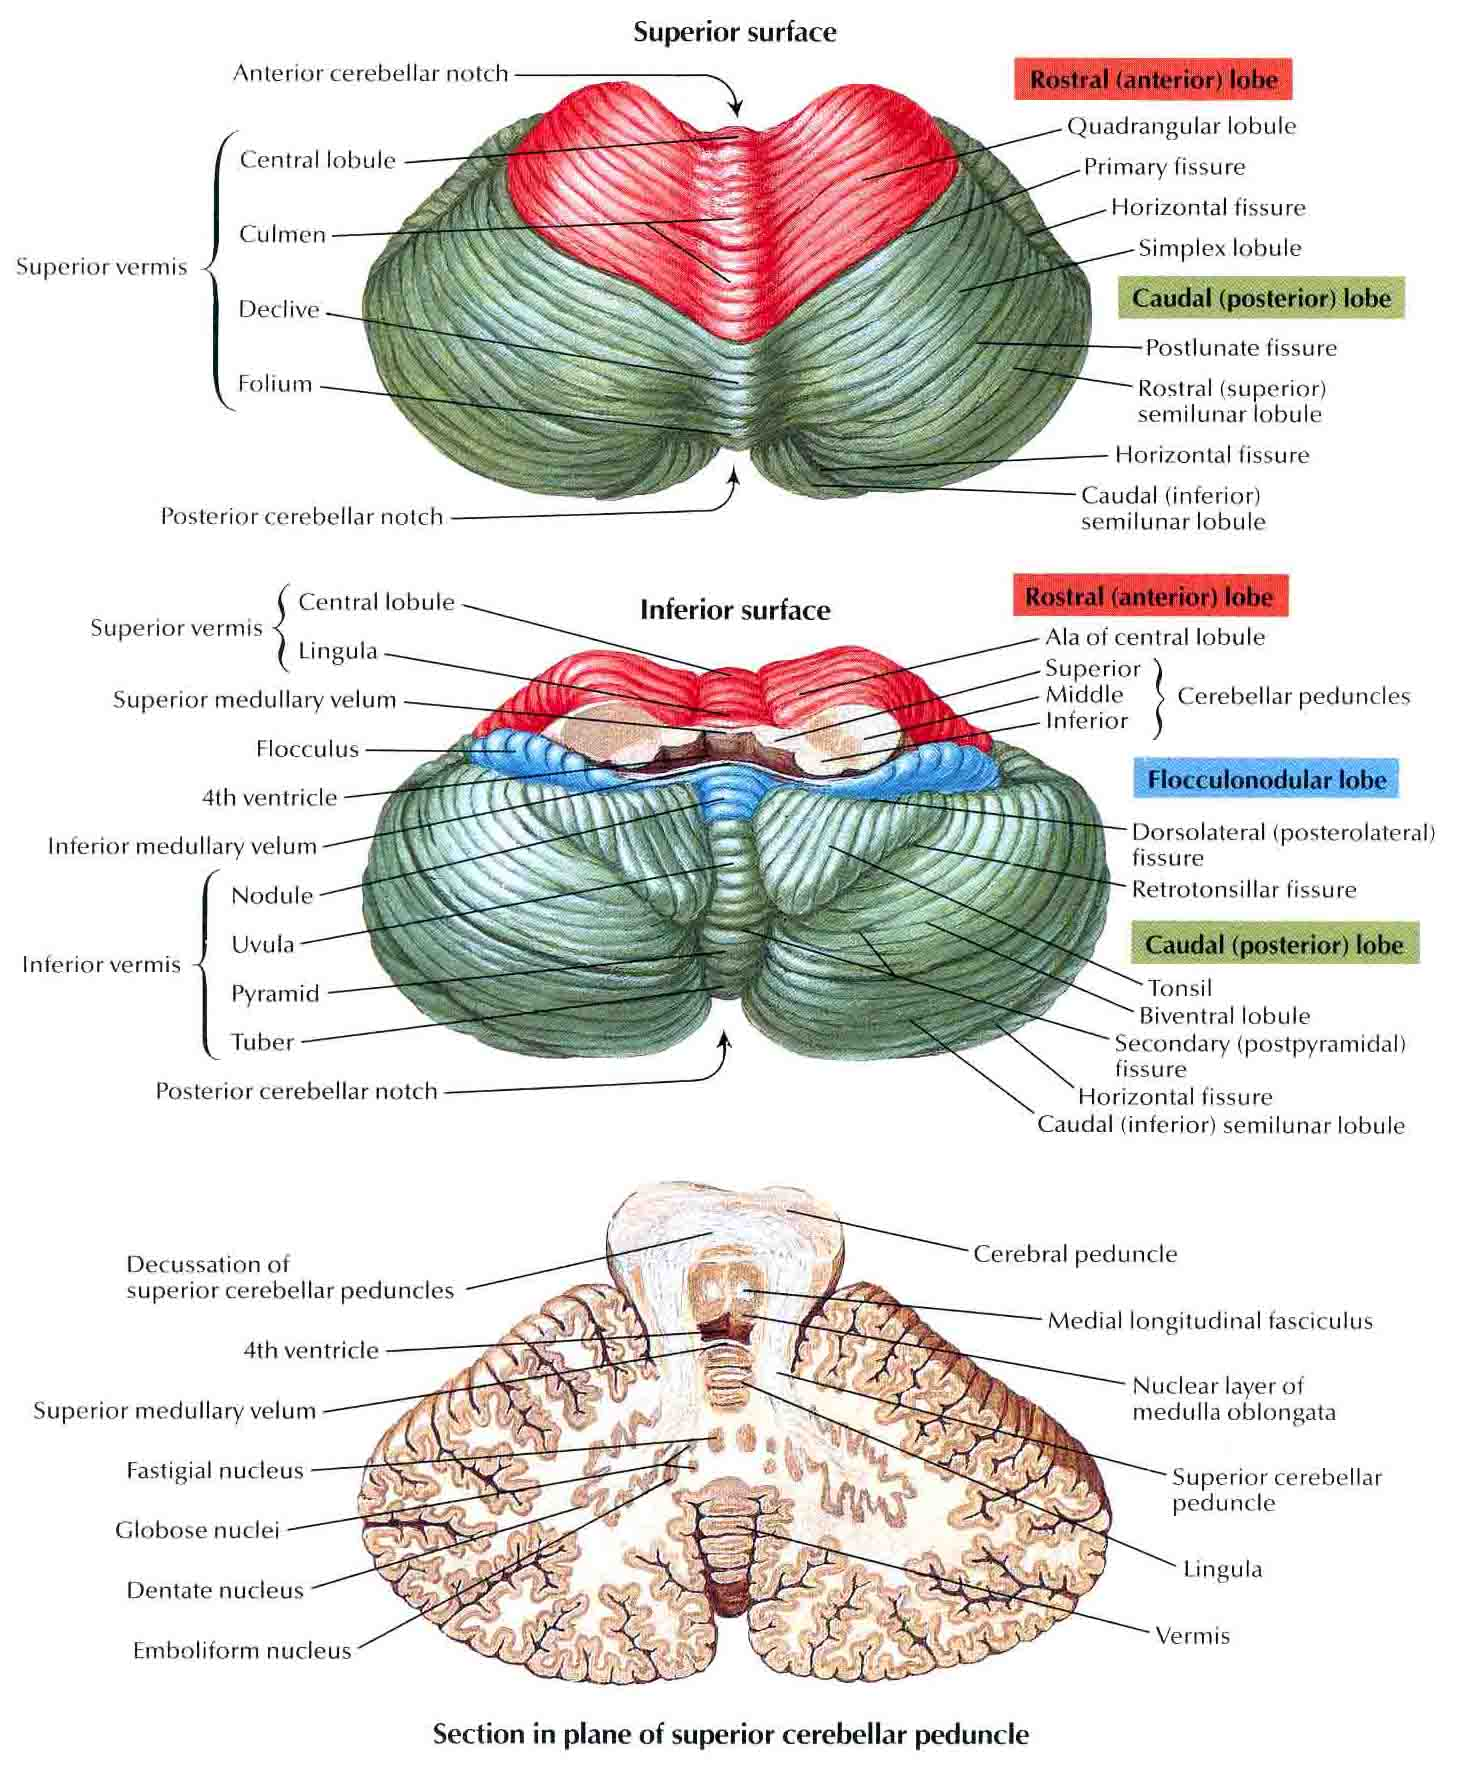 Cerebellum | Bedahunmuh's Blog Flocculonodular Lobe Label